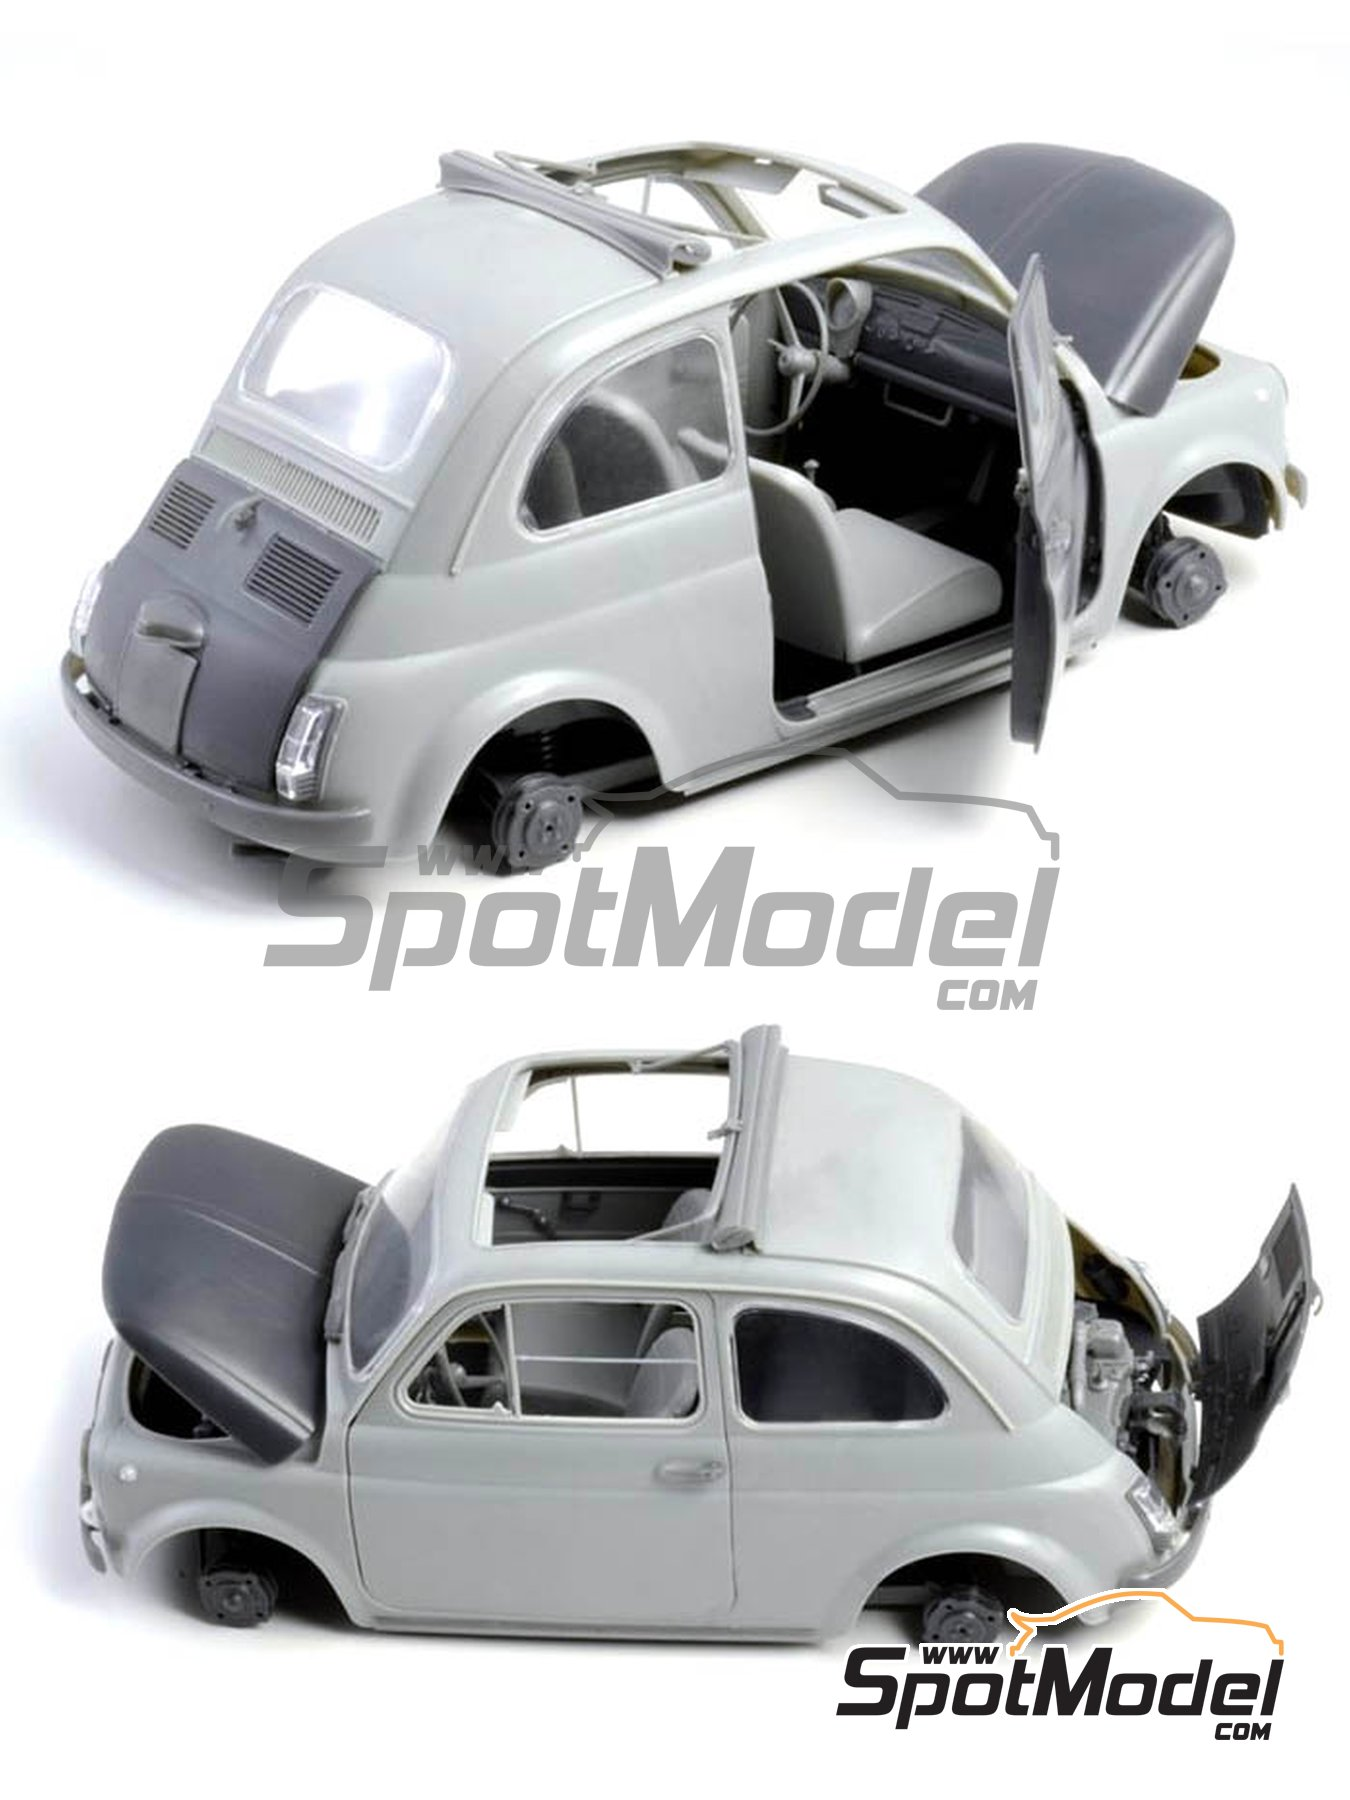 hobby kits 1 12 scale. Model Car Kit In 1/12 Scale Manufactured By Italeri (ref. 4703) Hobby Kits 1 12